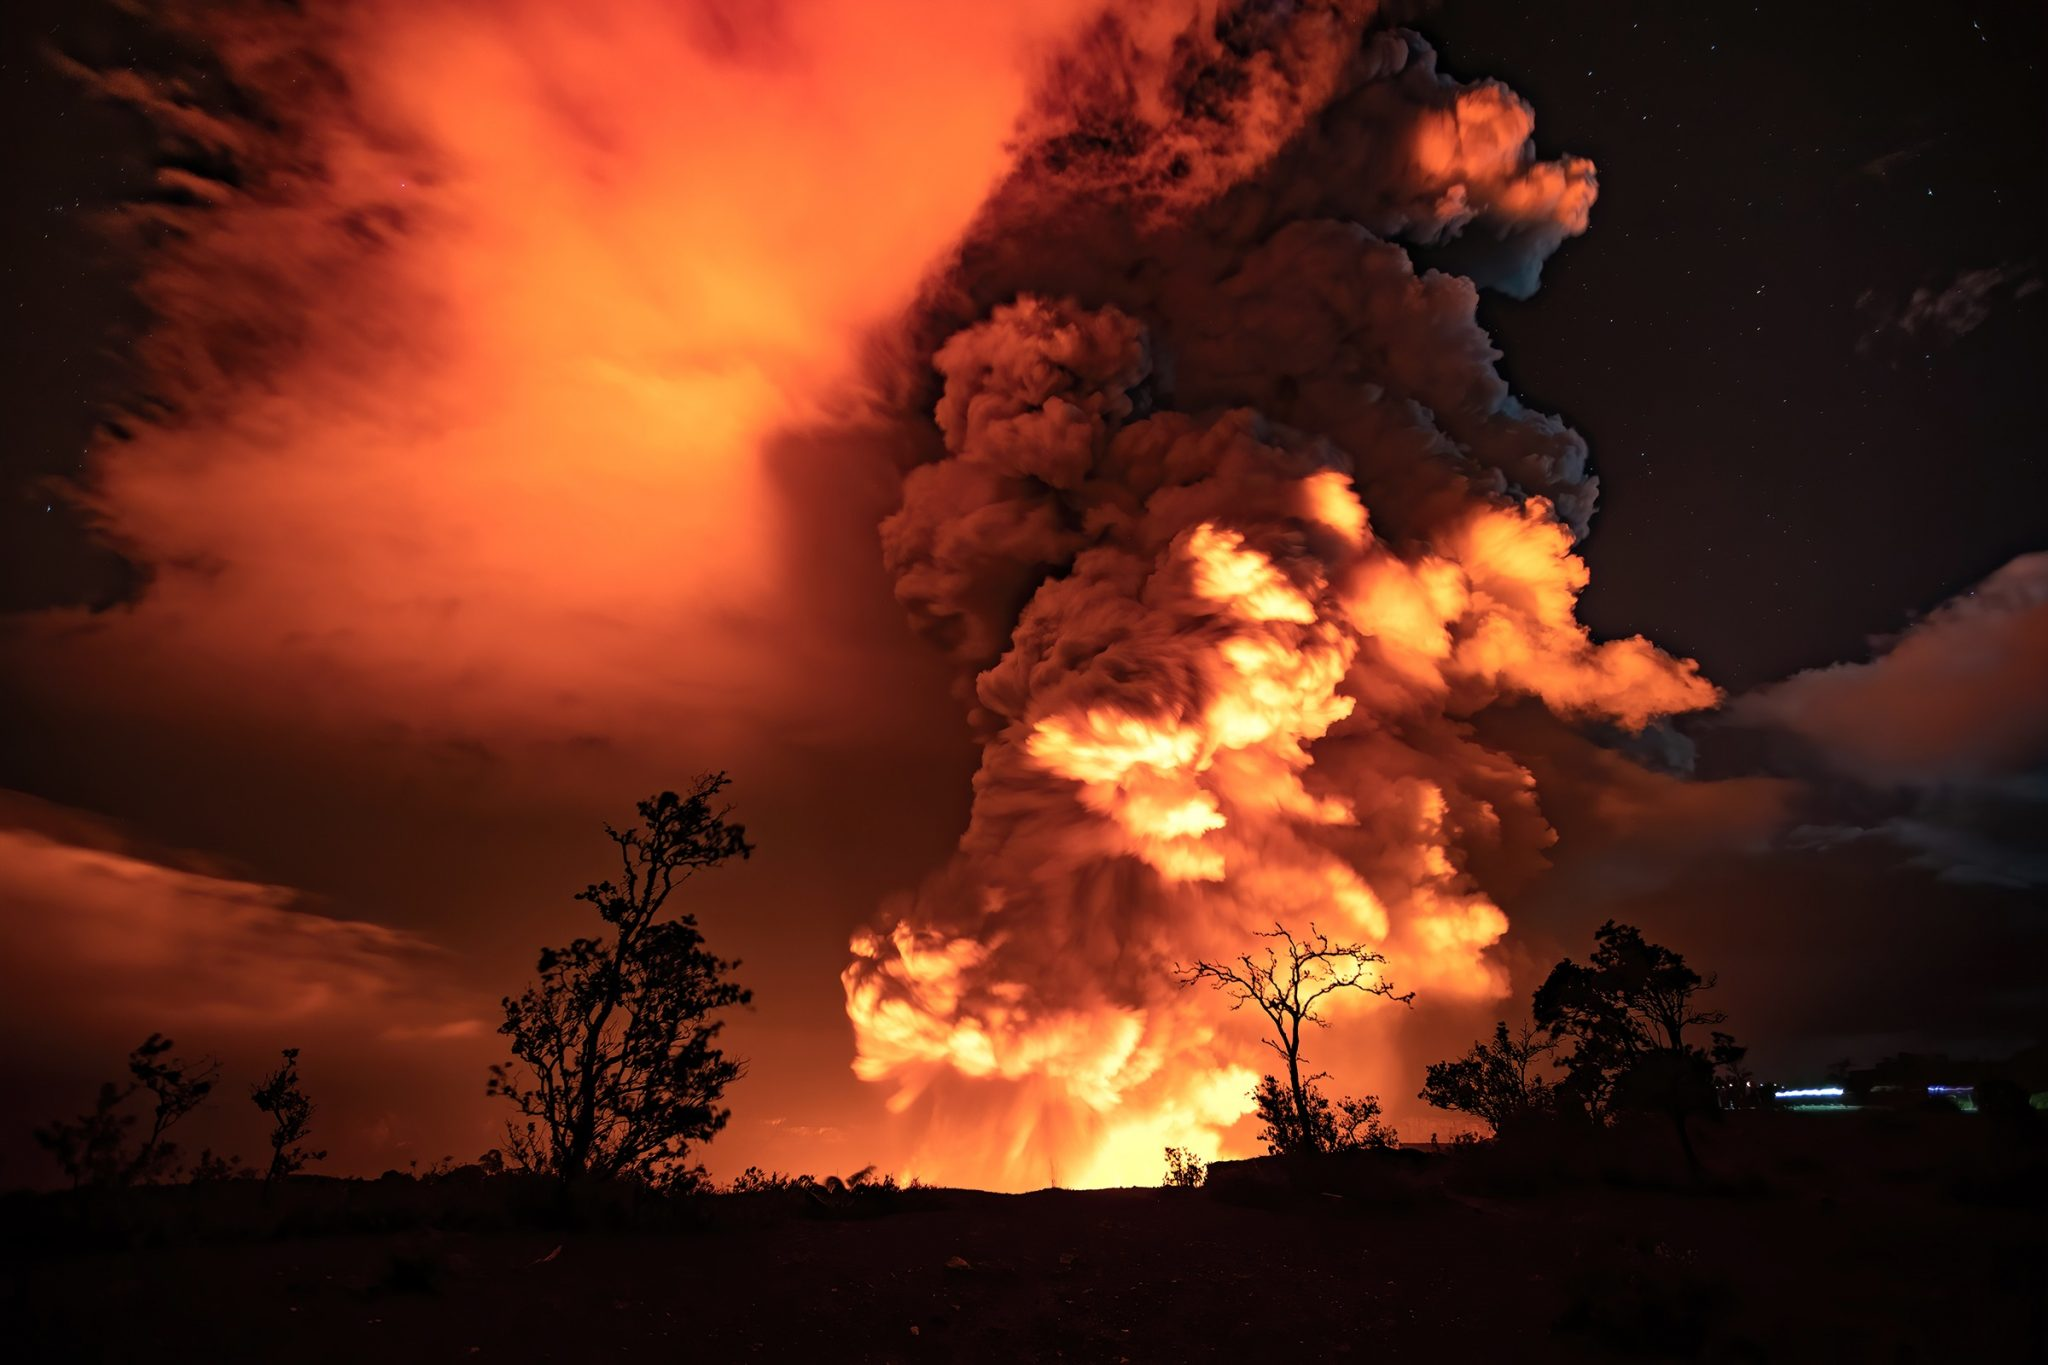 New Kilauea volcanic eruption on December 20, Kilauea volcanic eruption on December 20, Kilauea volcanic eruption on December 20 video, Kilauea volcanic eruption on December 20 pictures